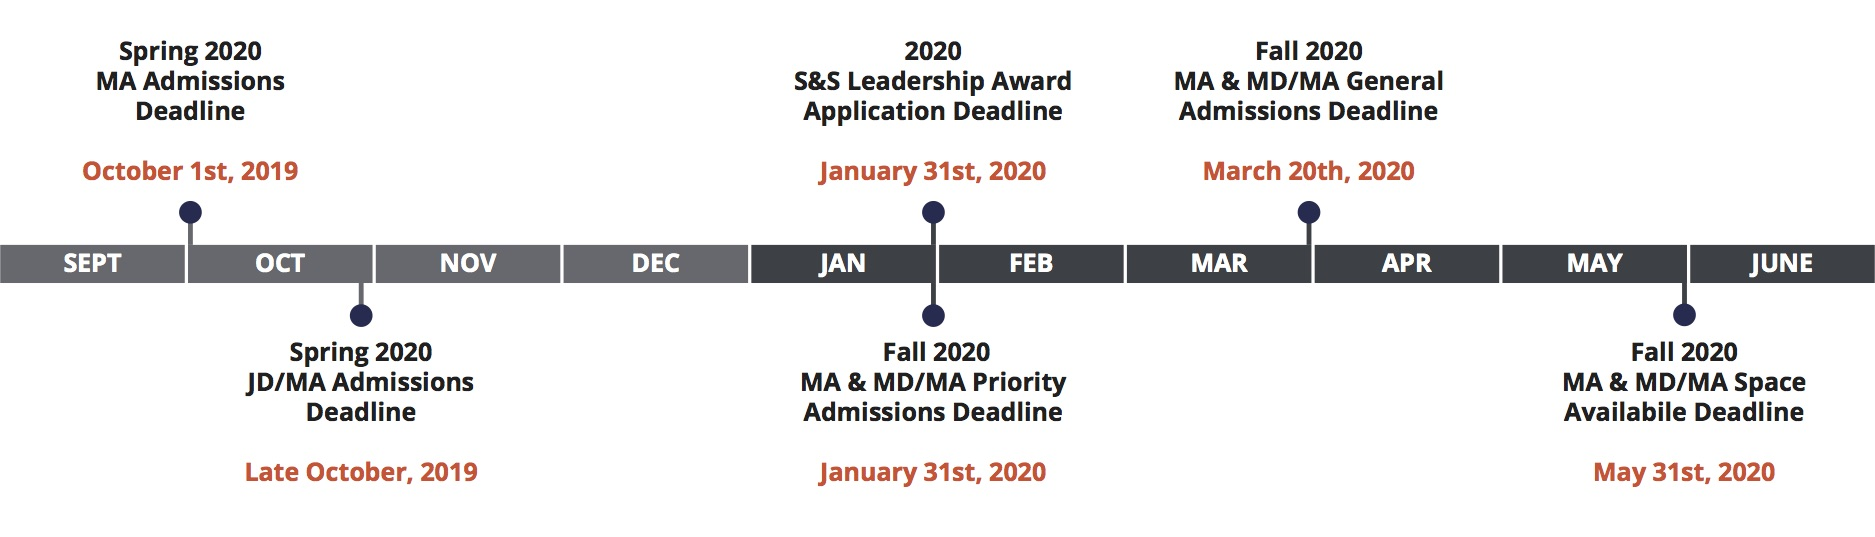 Admissions Deadlines for the 2019-2020 School Year